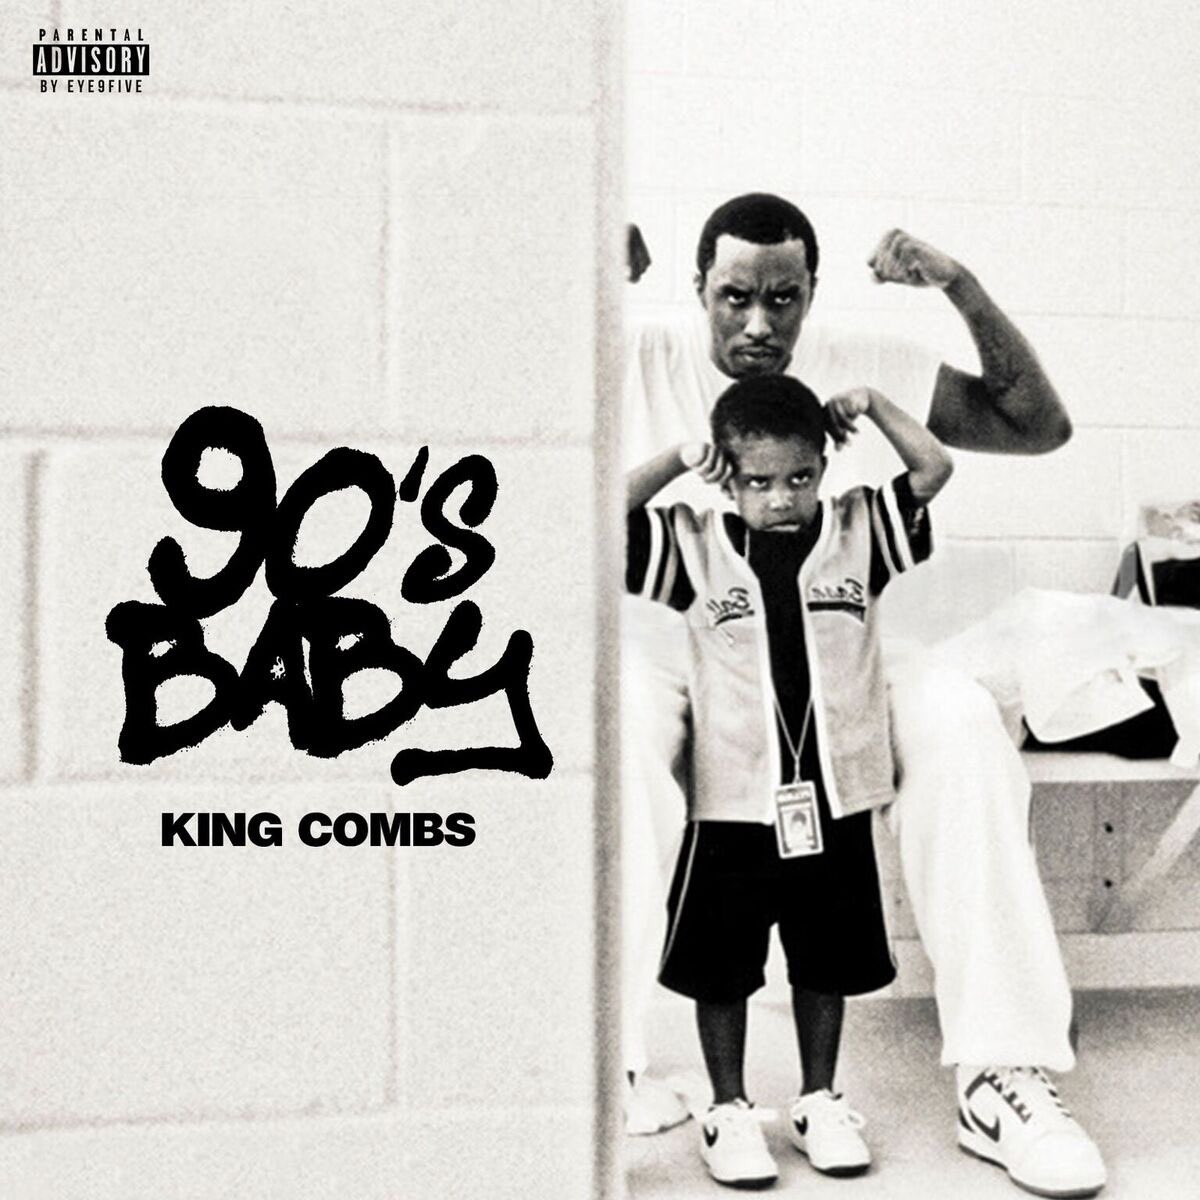 RT @illroots: KING COMBS - 90'S BABY (MIXTAPE) https://t.co/llV8pu13Xn [@kingcombs] https://t.co/yInQuJL3Ih